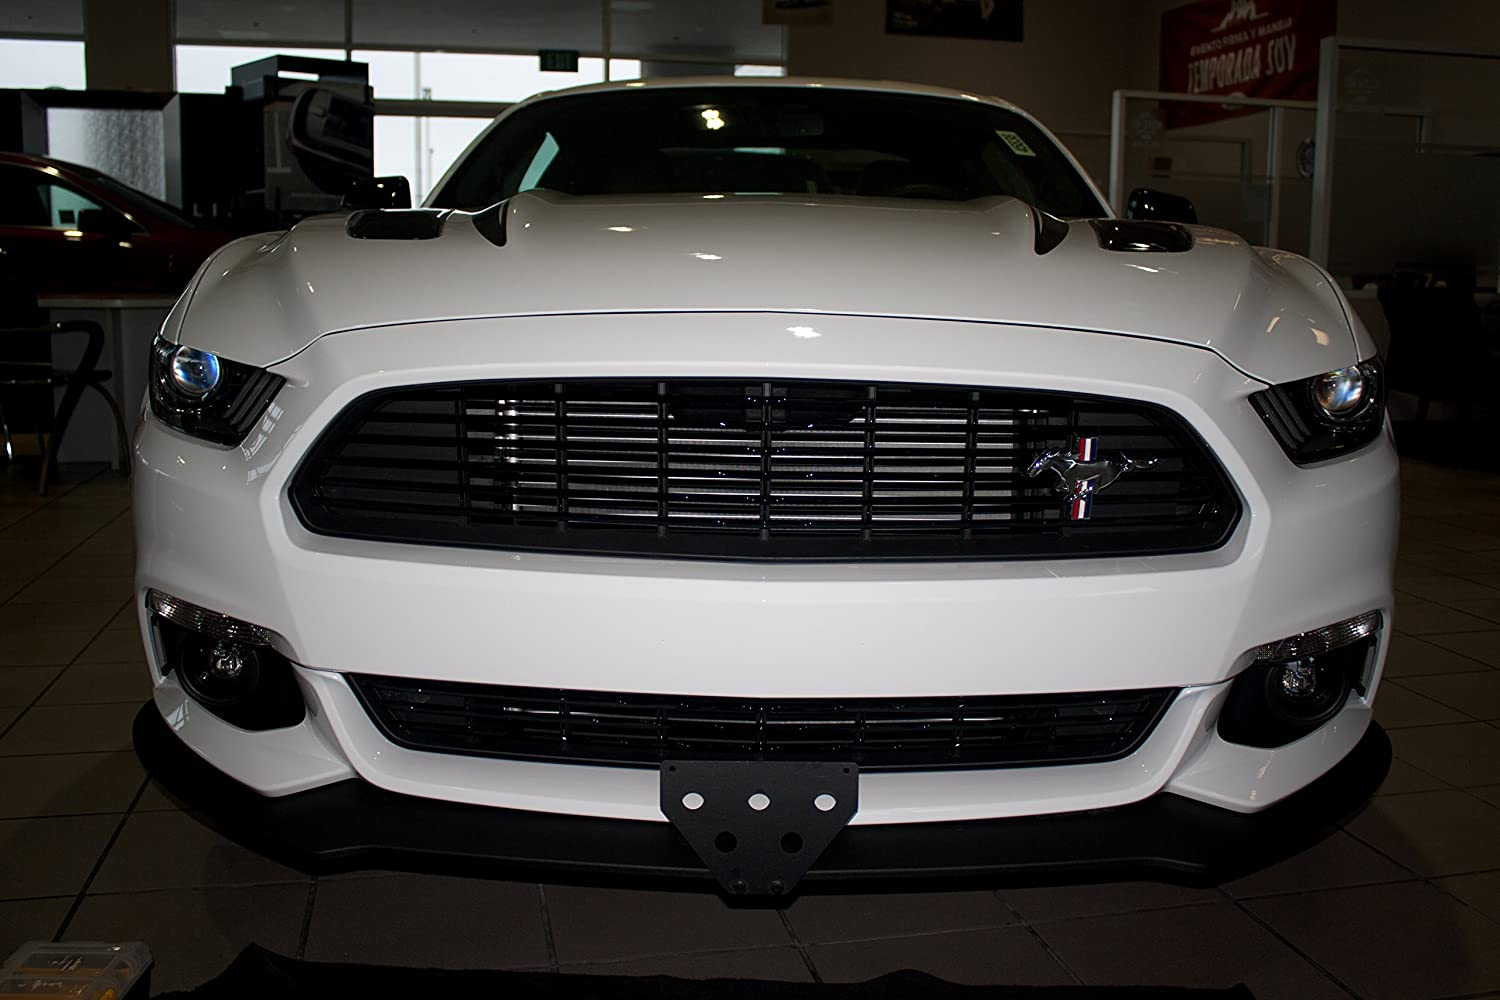 Ford Mustang 2016 California Special Sto-N-Sho Removable License Plate Sto N Sho